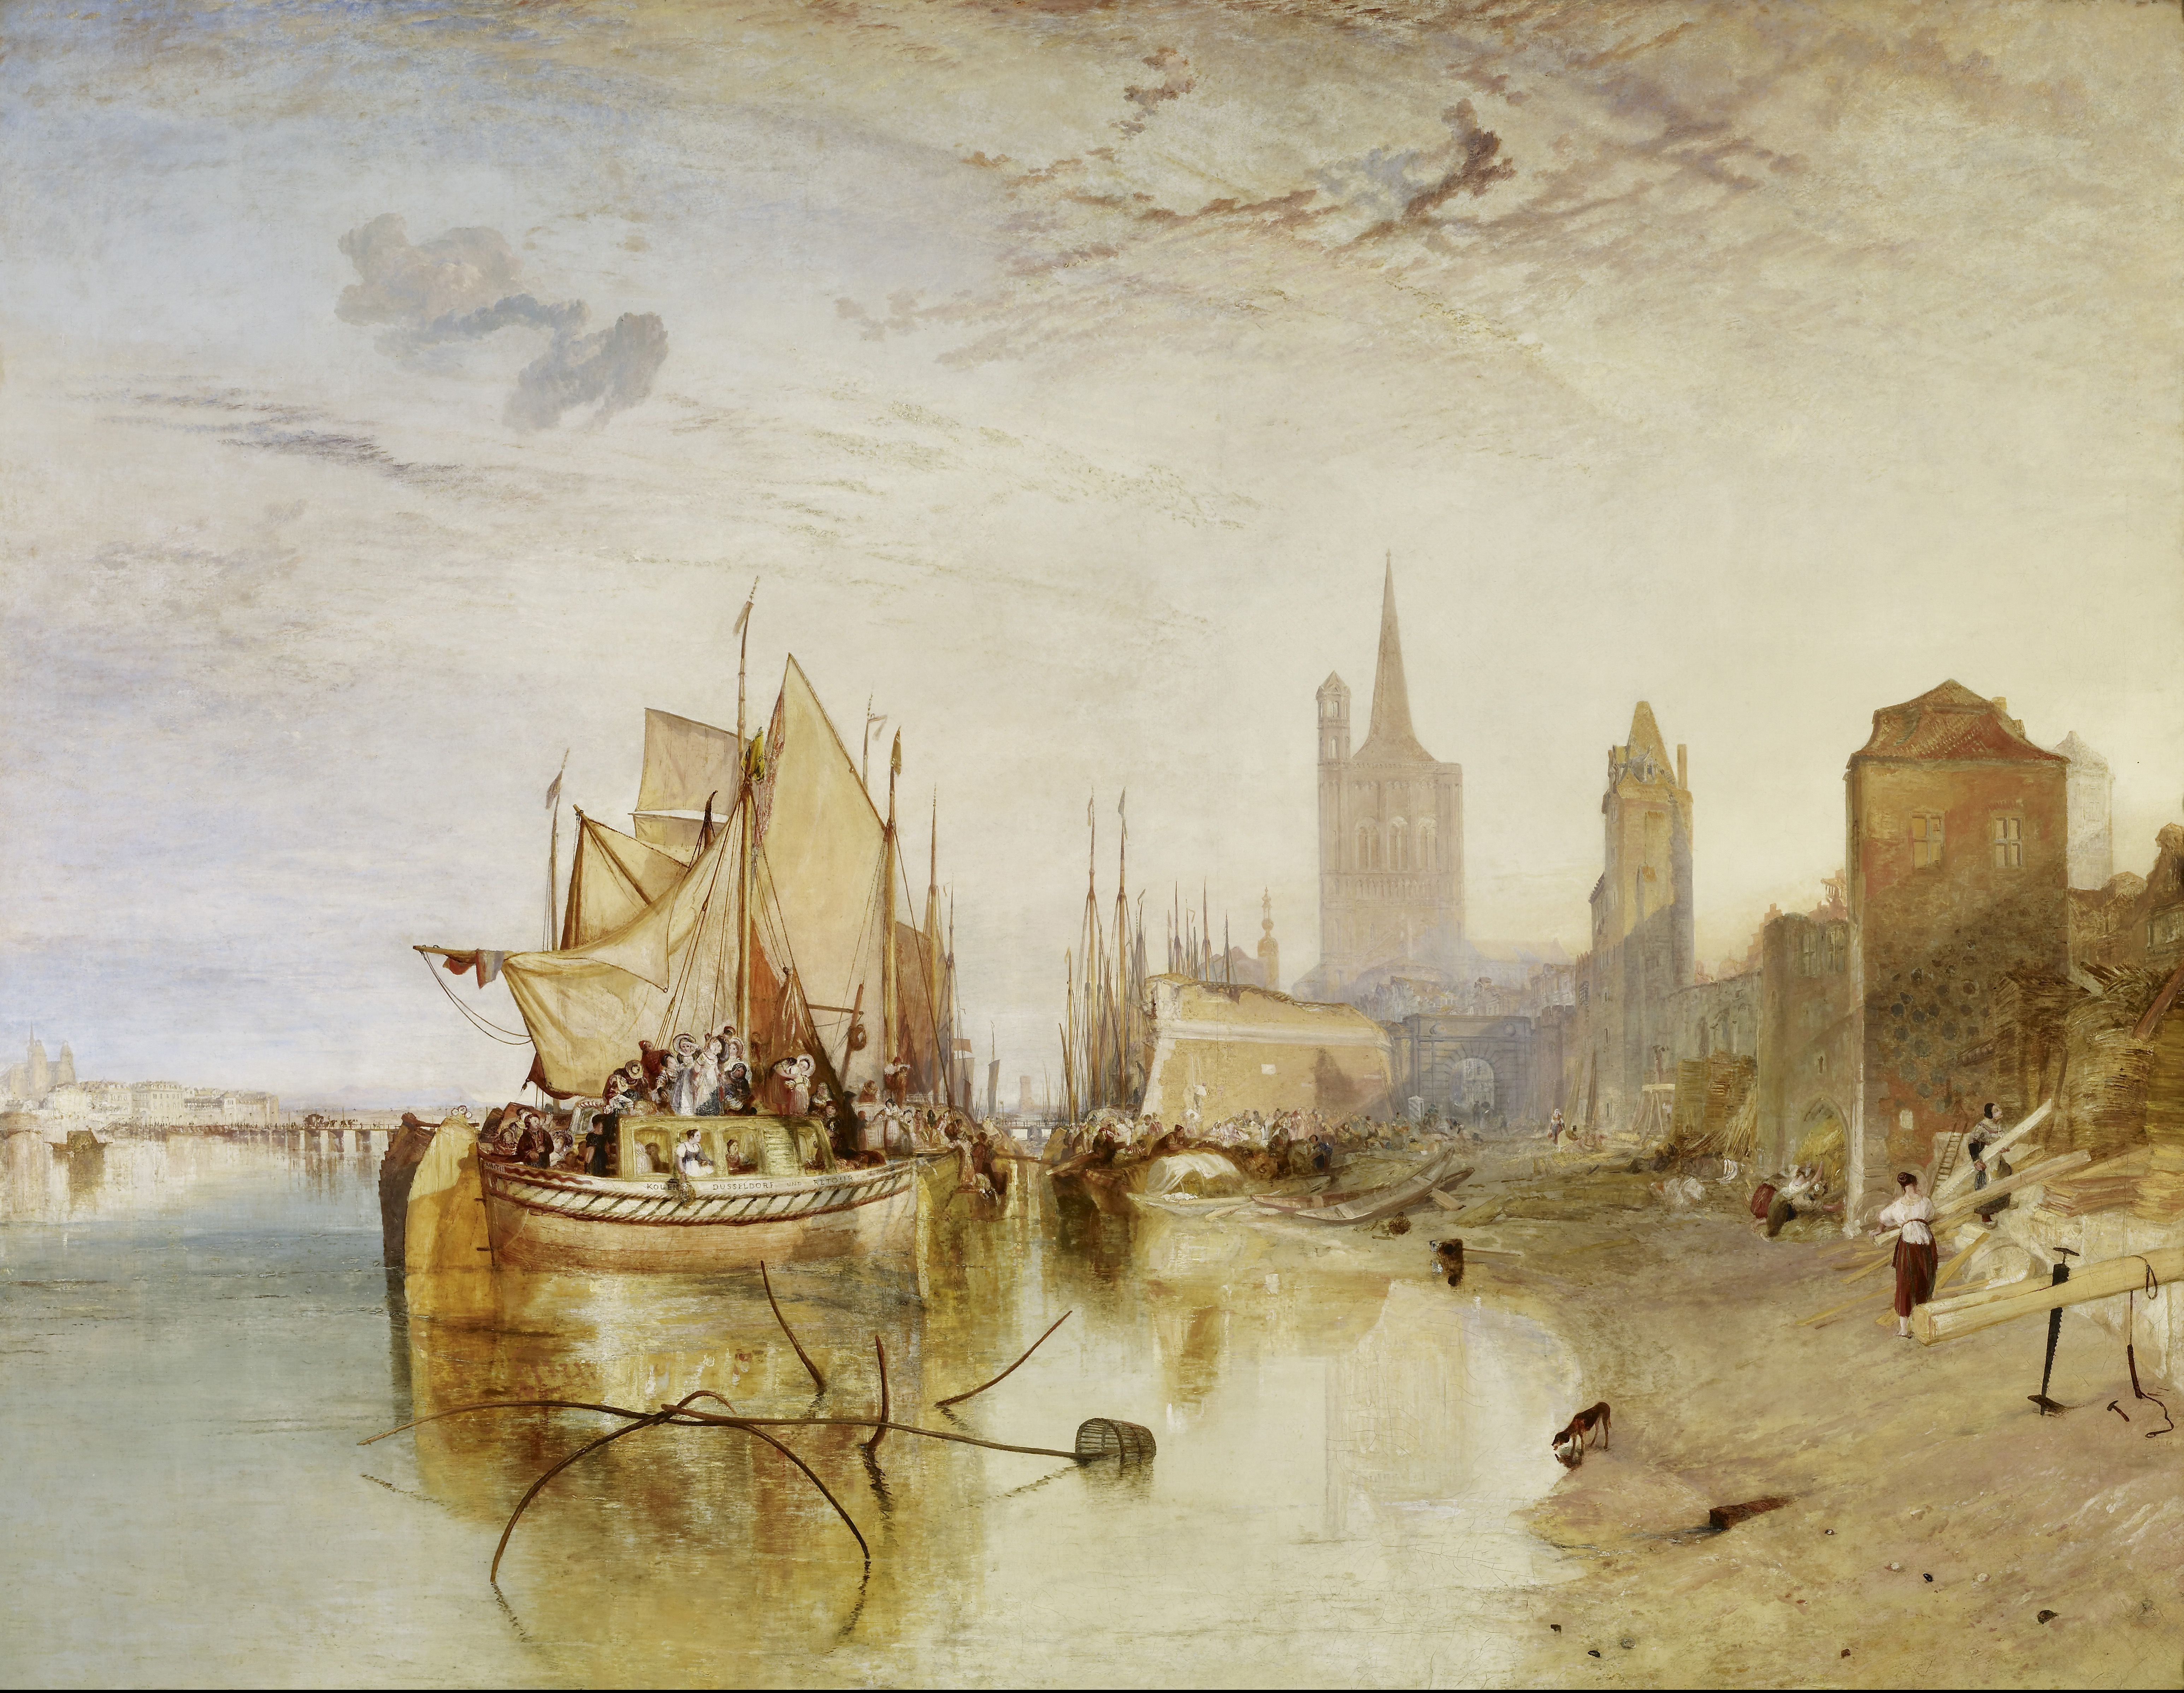 File:Turner Cologne, the Arrival of a Packet-Boat, Evening